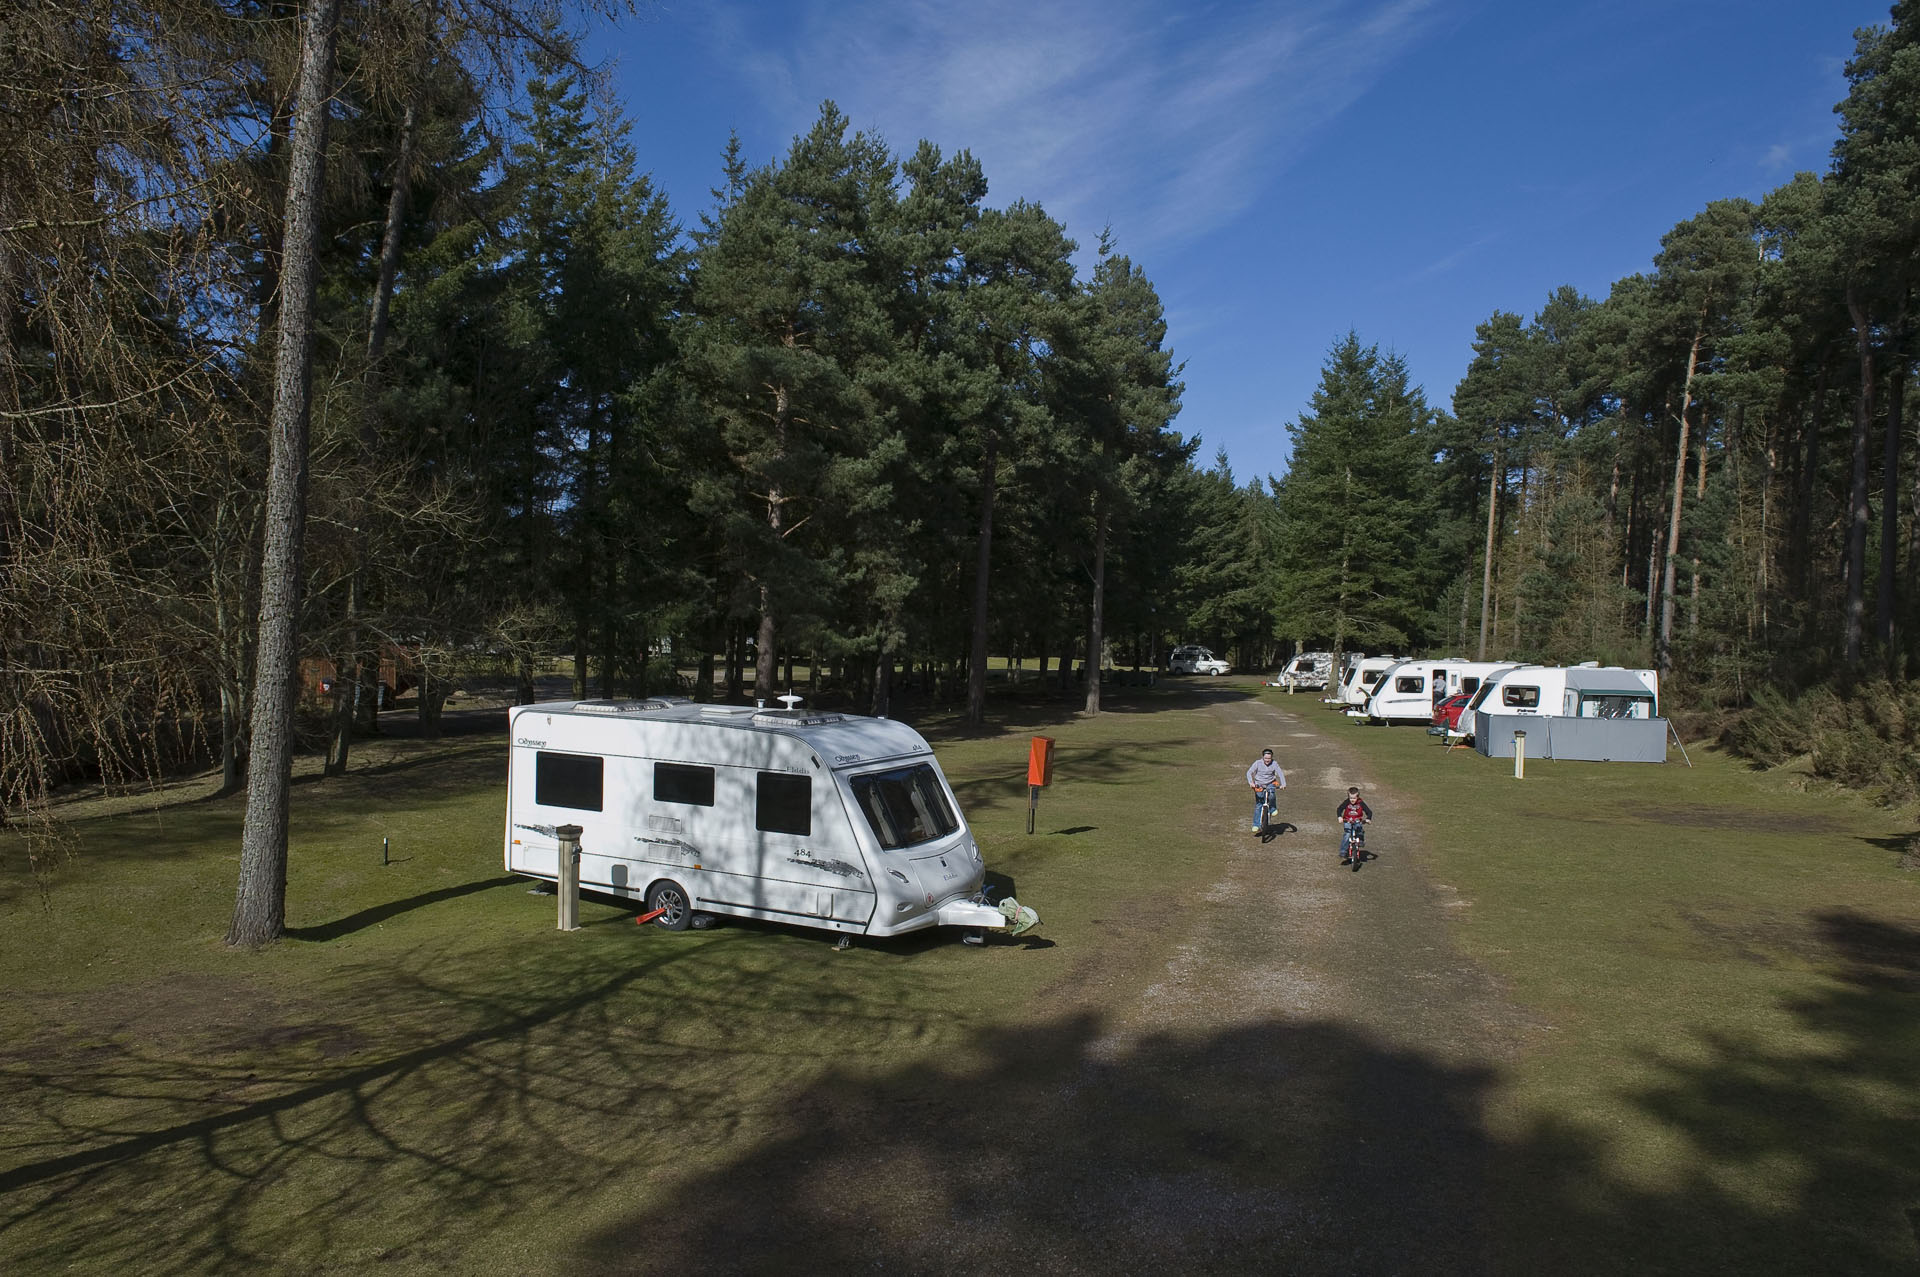 Oban - Camping and Caravanning Club Site - The Camping and